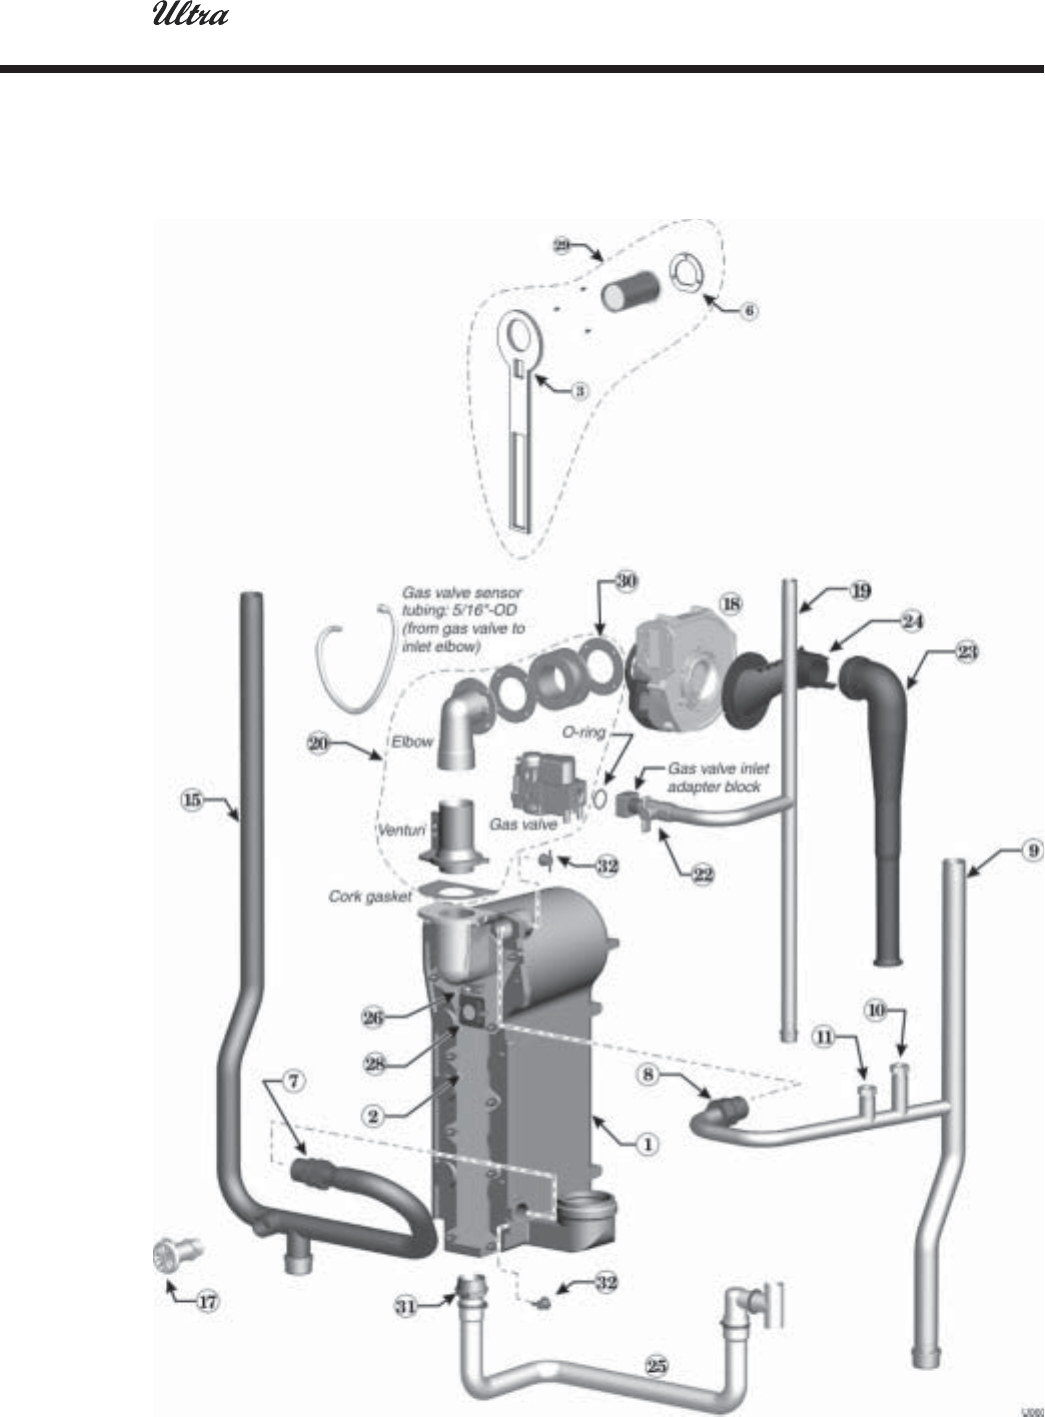 Page 39 Of Weil Mclain Water Heater 80 User Guide